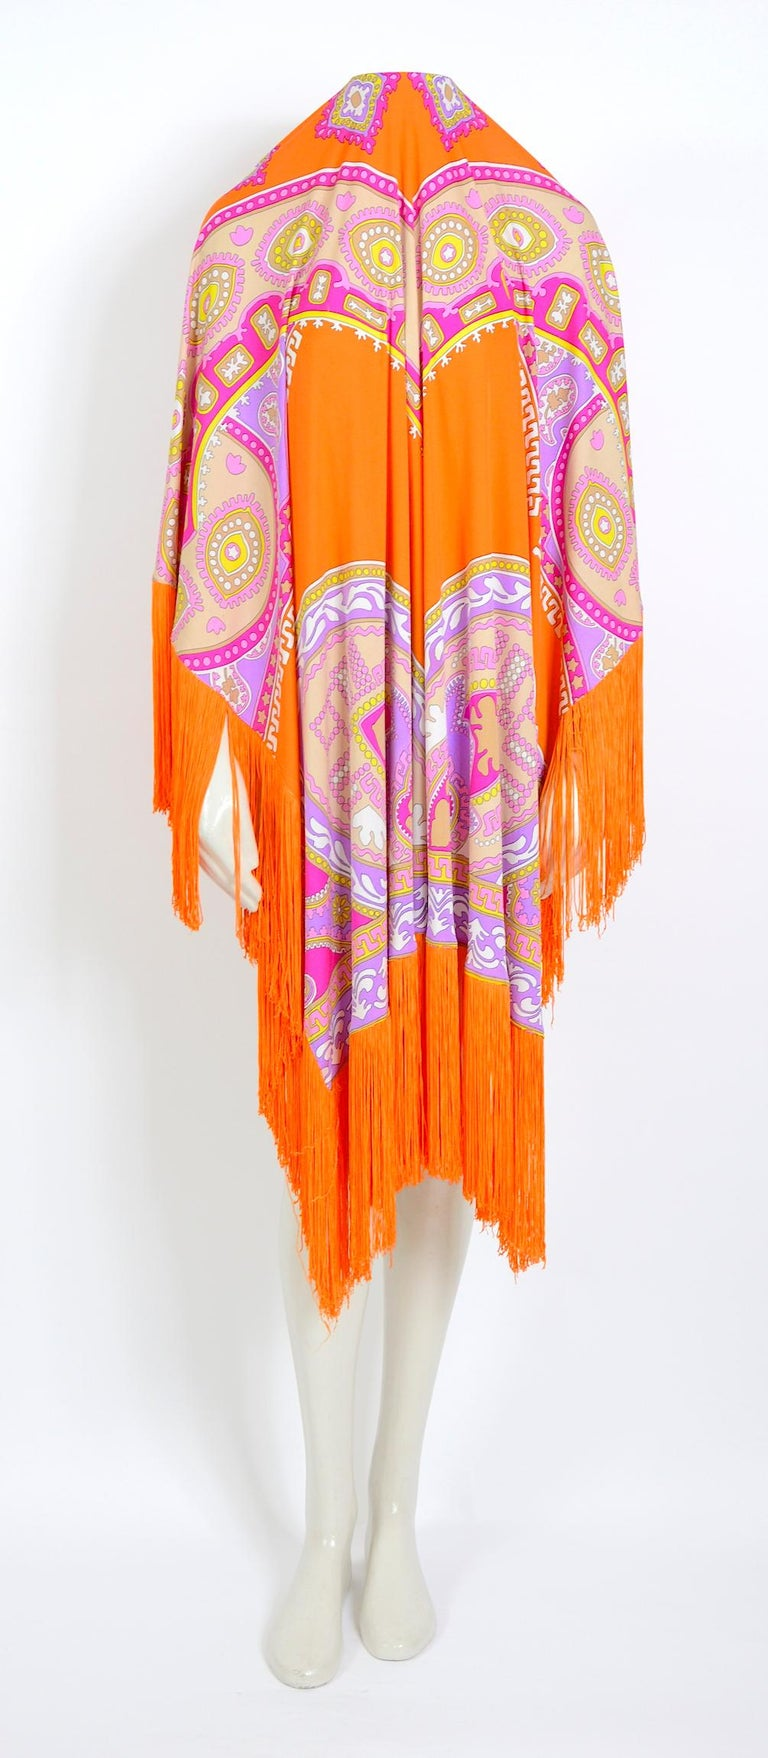 Leonard Paris vintage 1970s extra large silk jersey printed fringed scarf For Sale 4